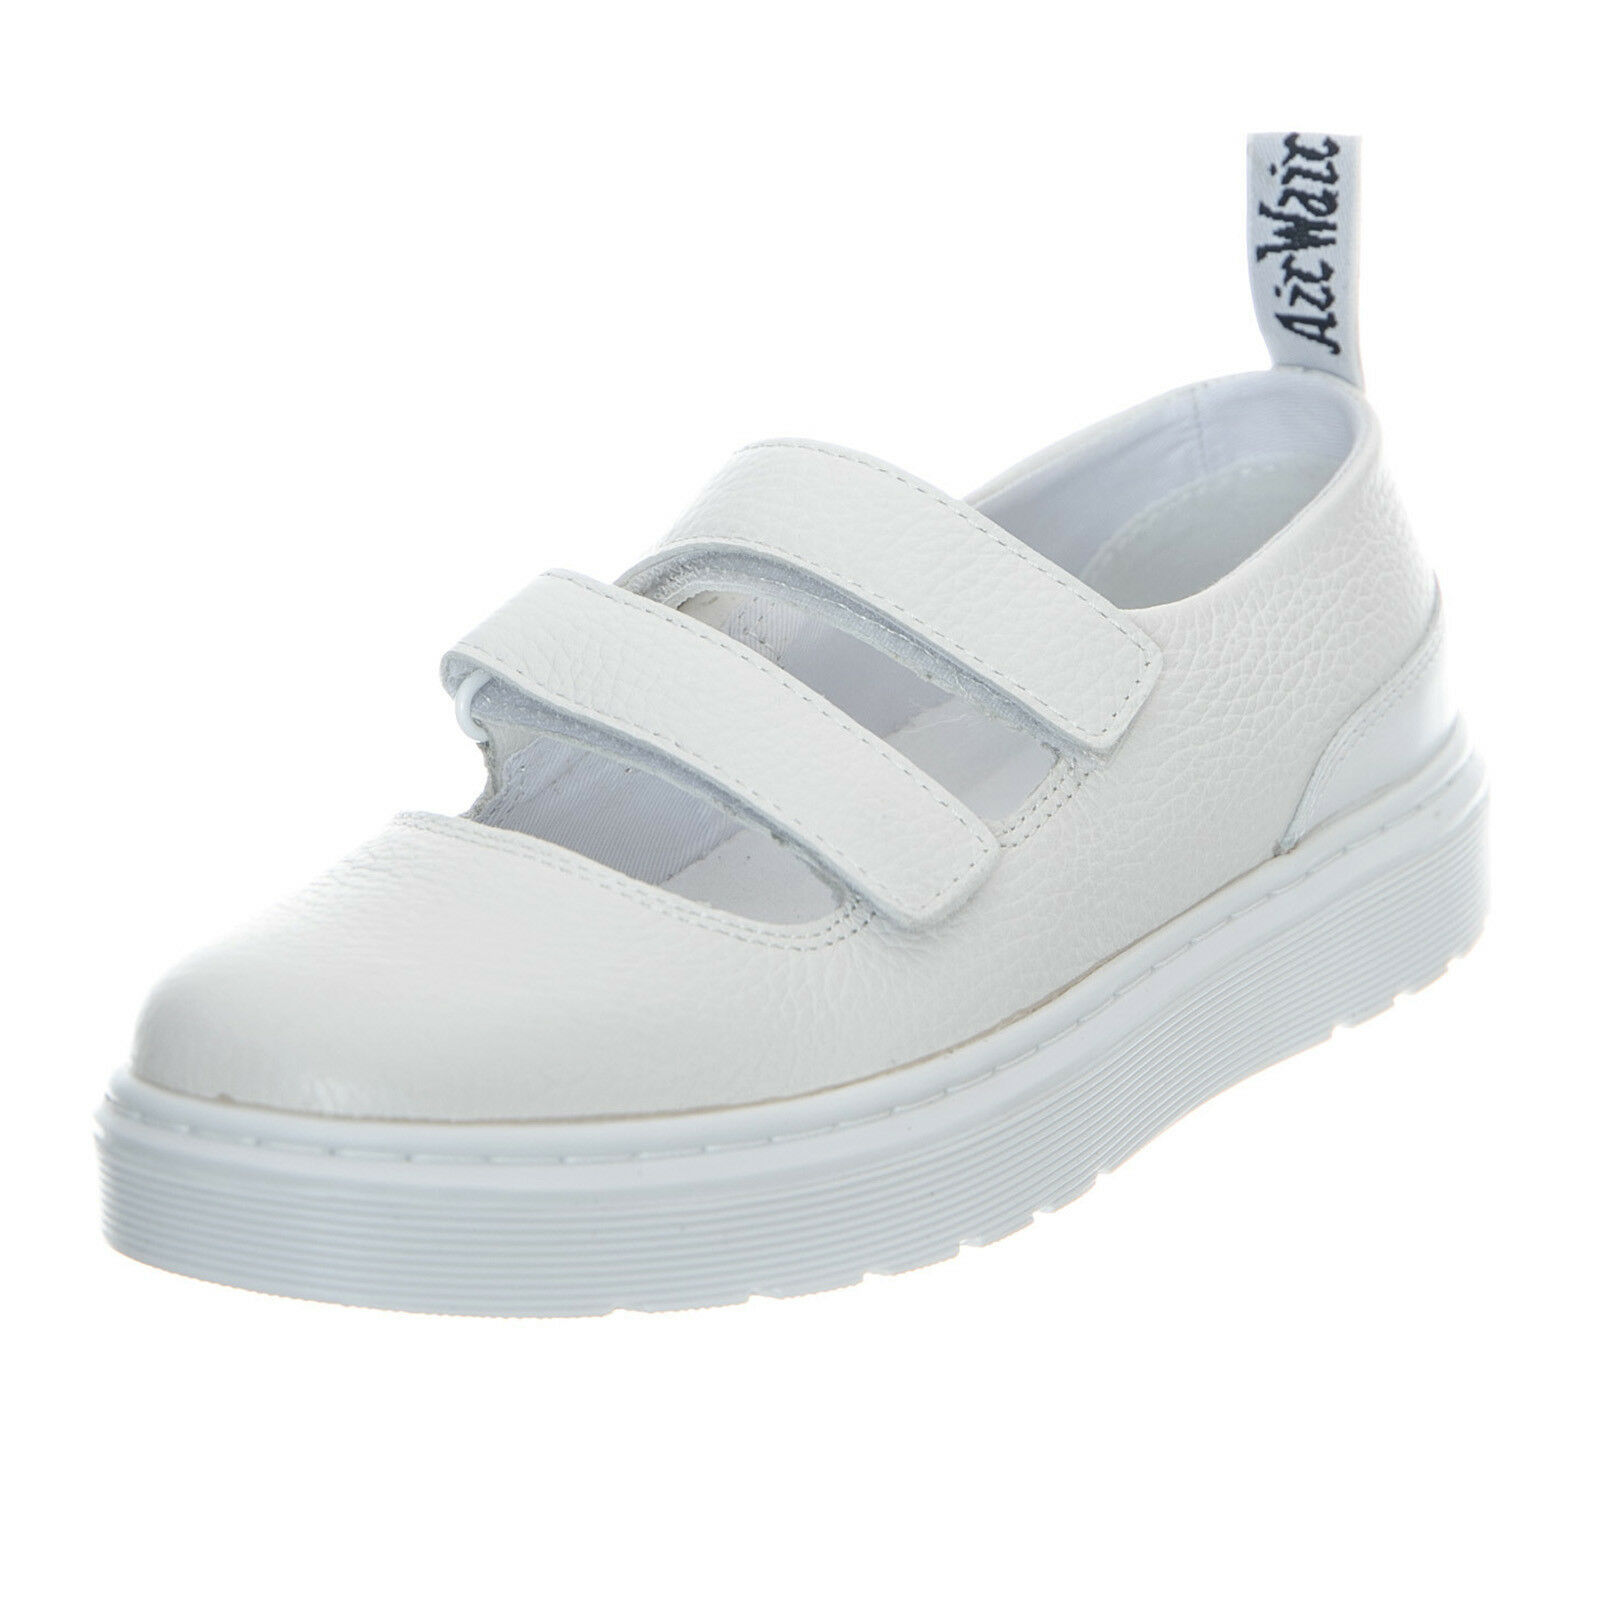 Dr.Martens Mae Mary Jane White Aunt Sally Venice - shoes Mary Jane Woman White